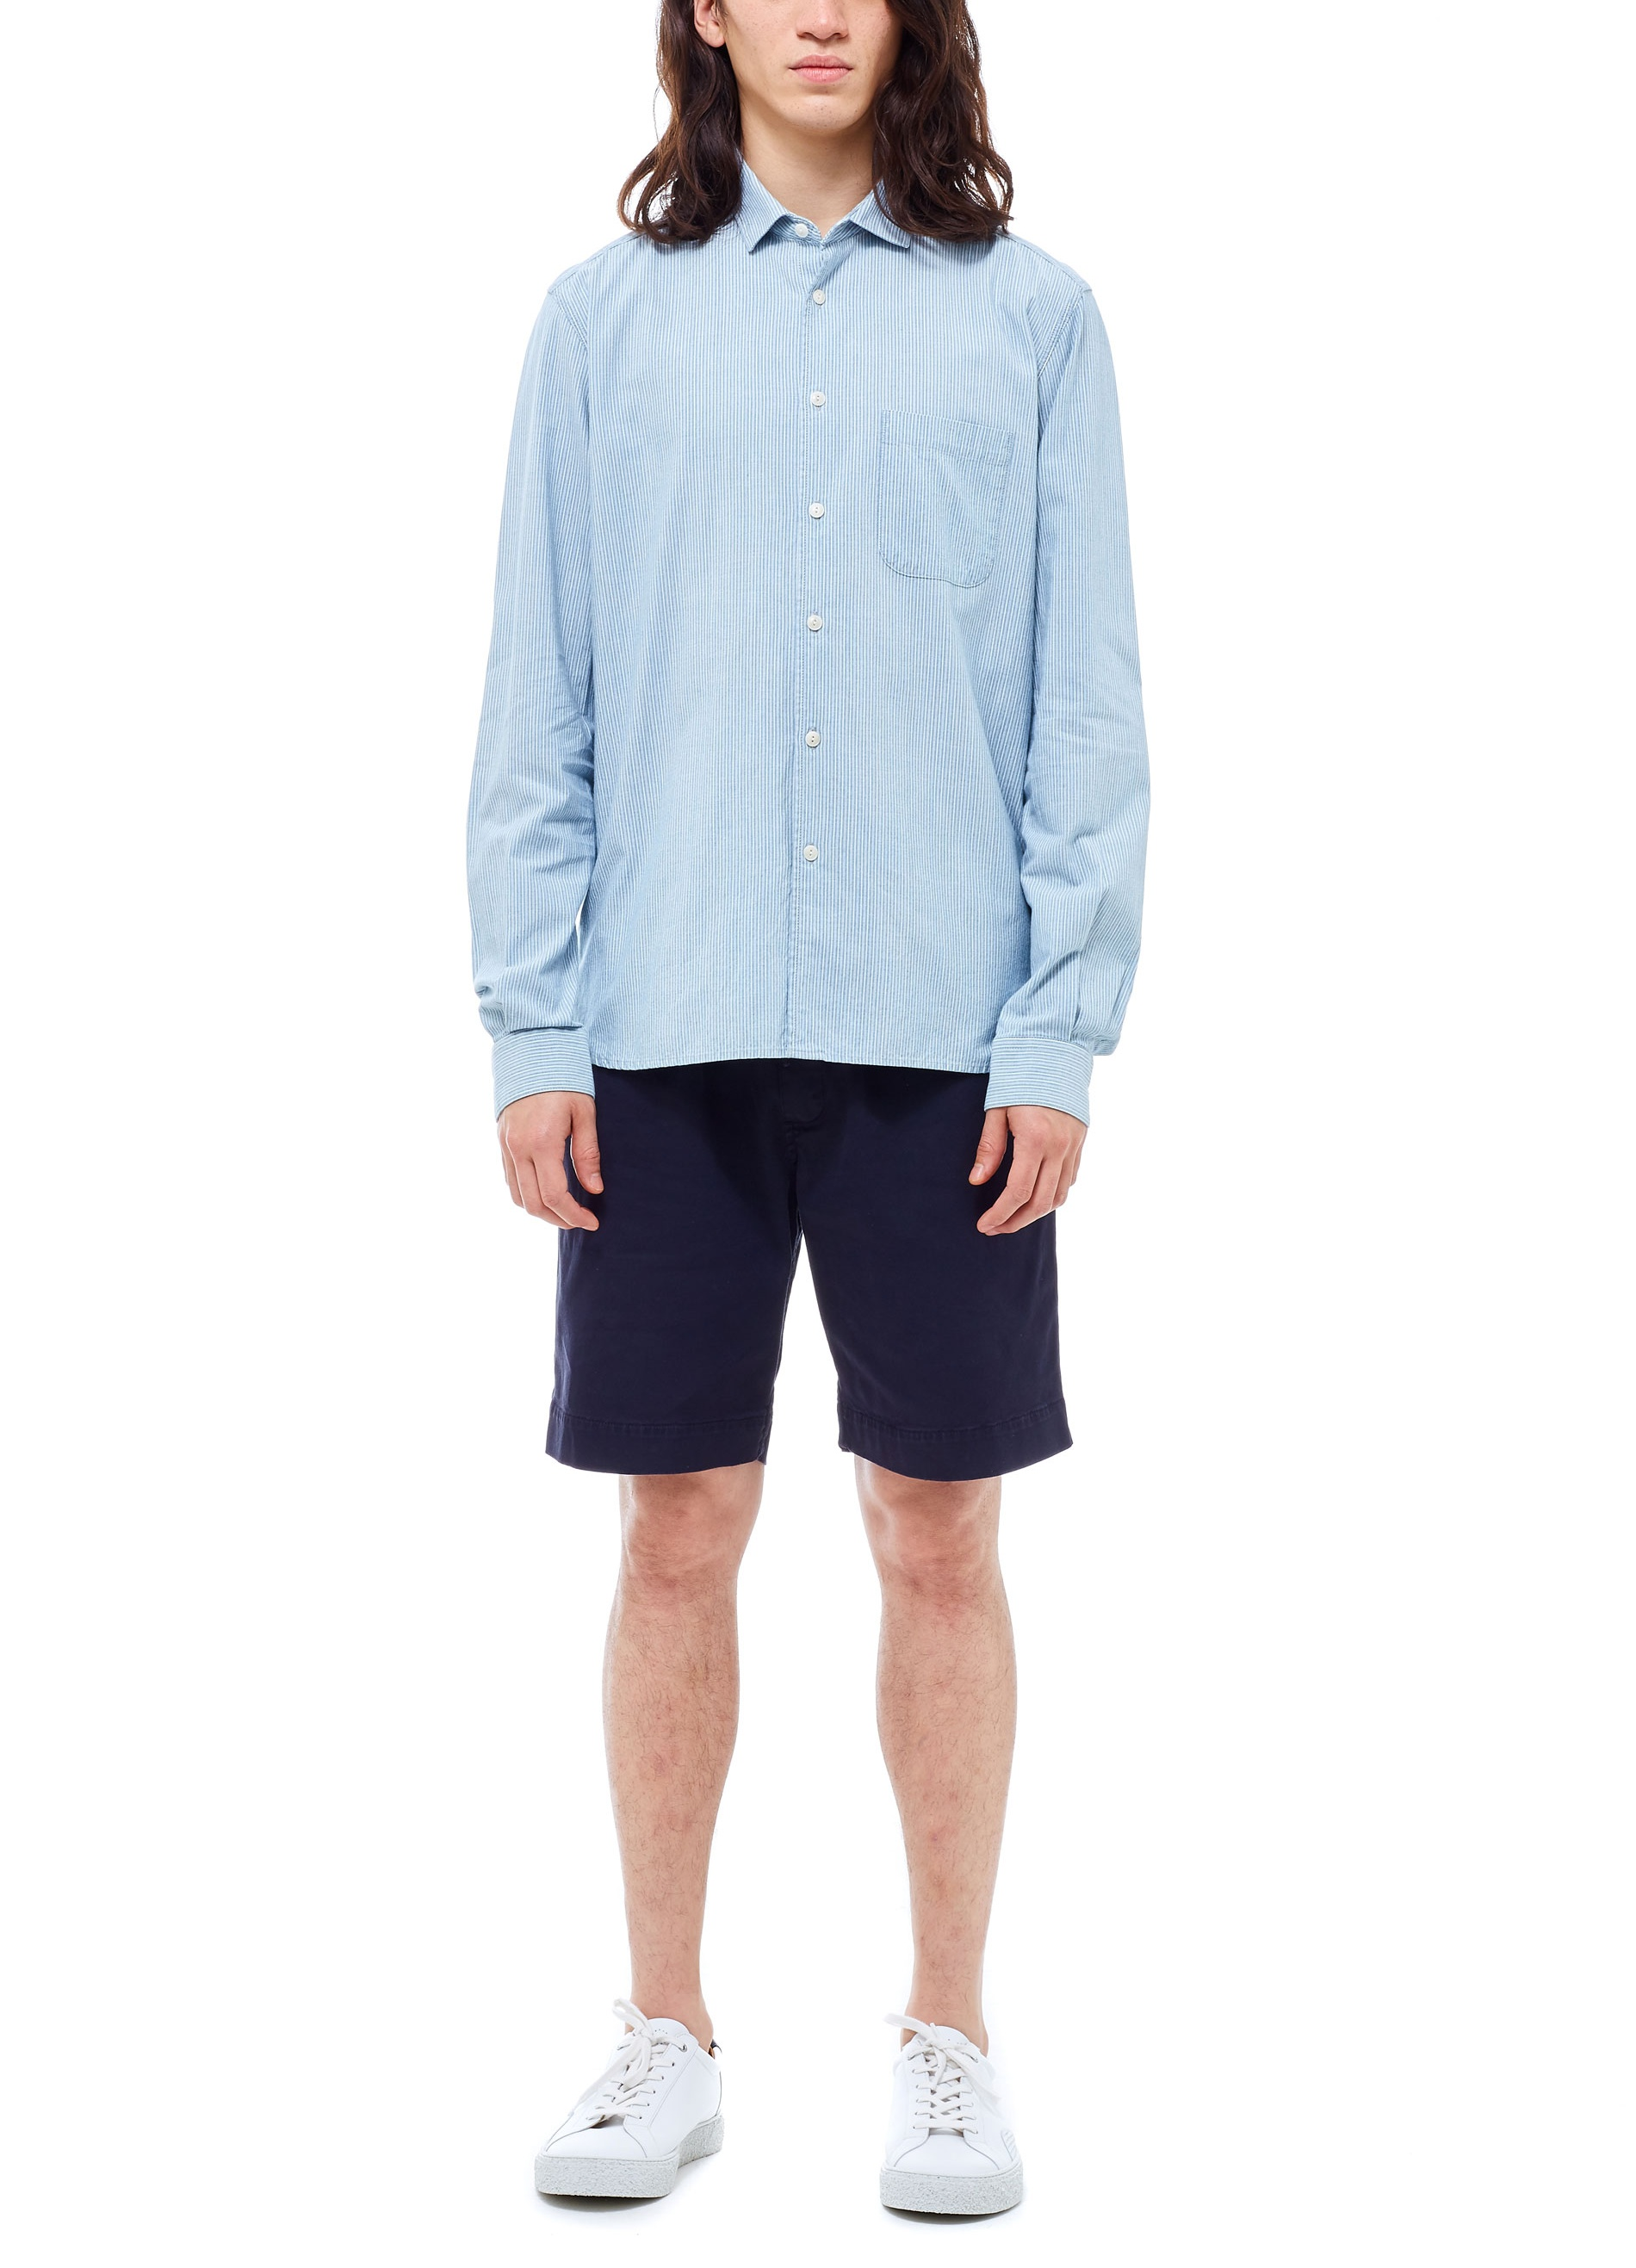 YMC Curtis Shirt (blue)